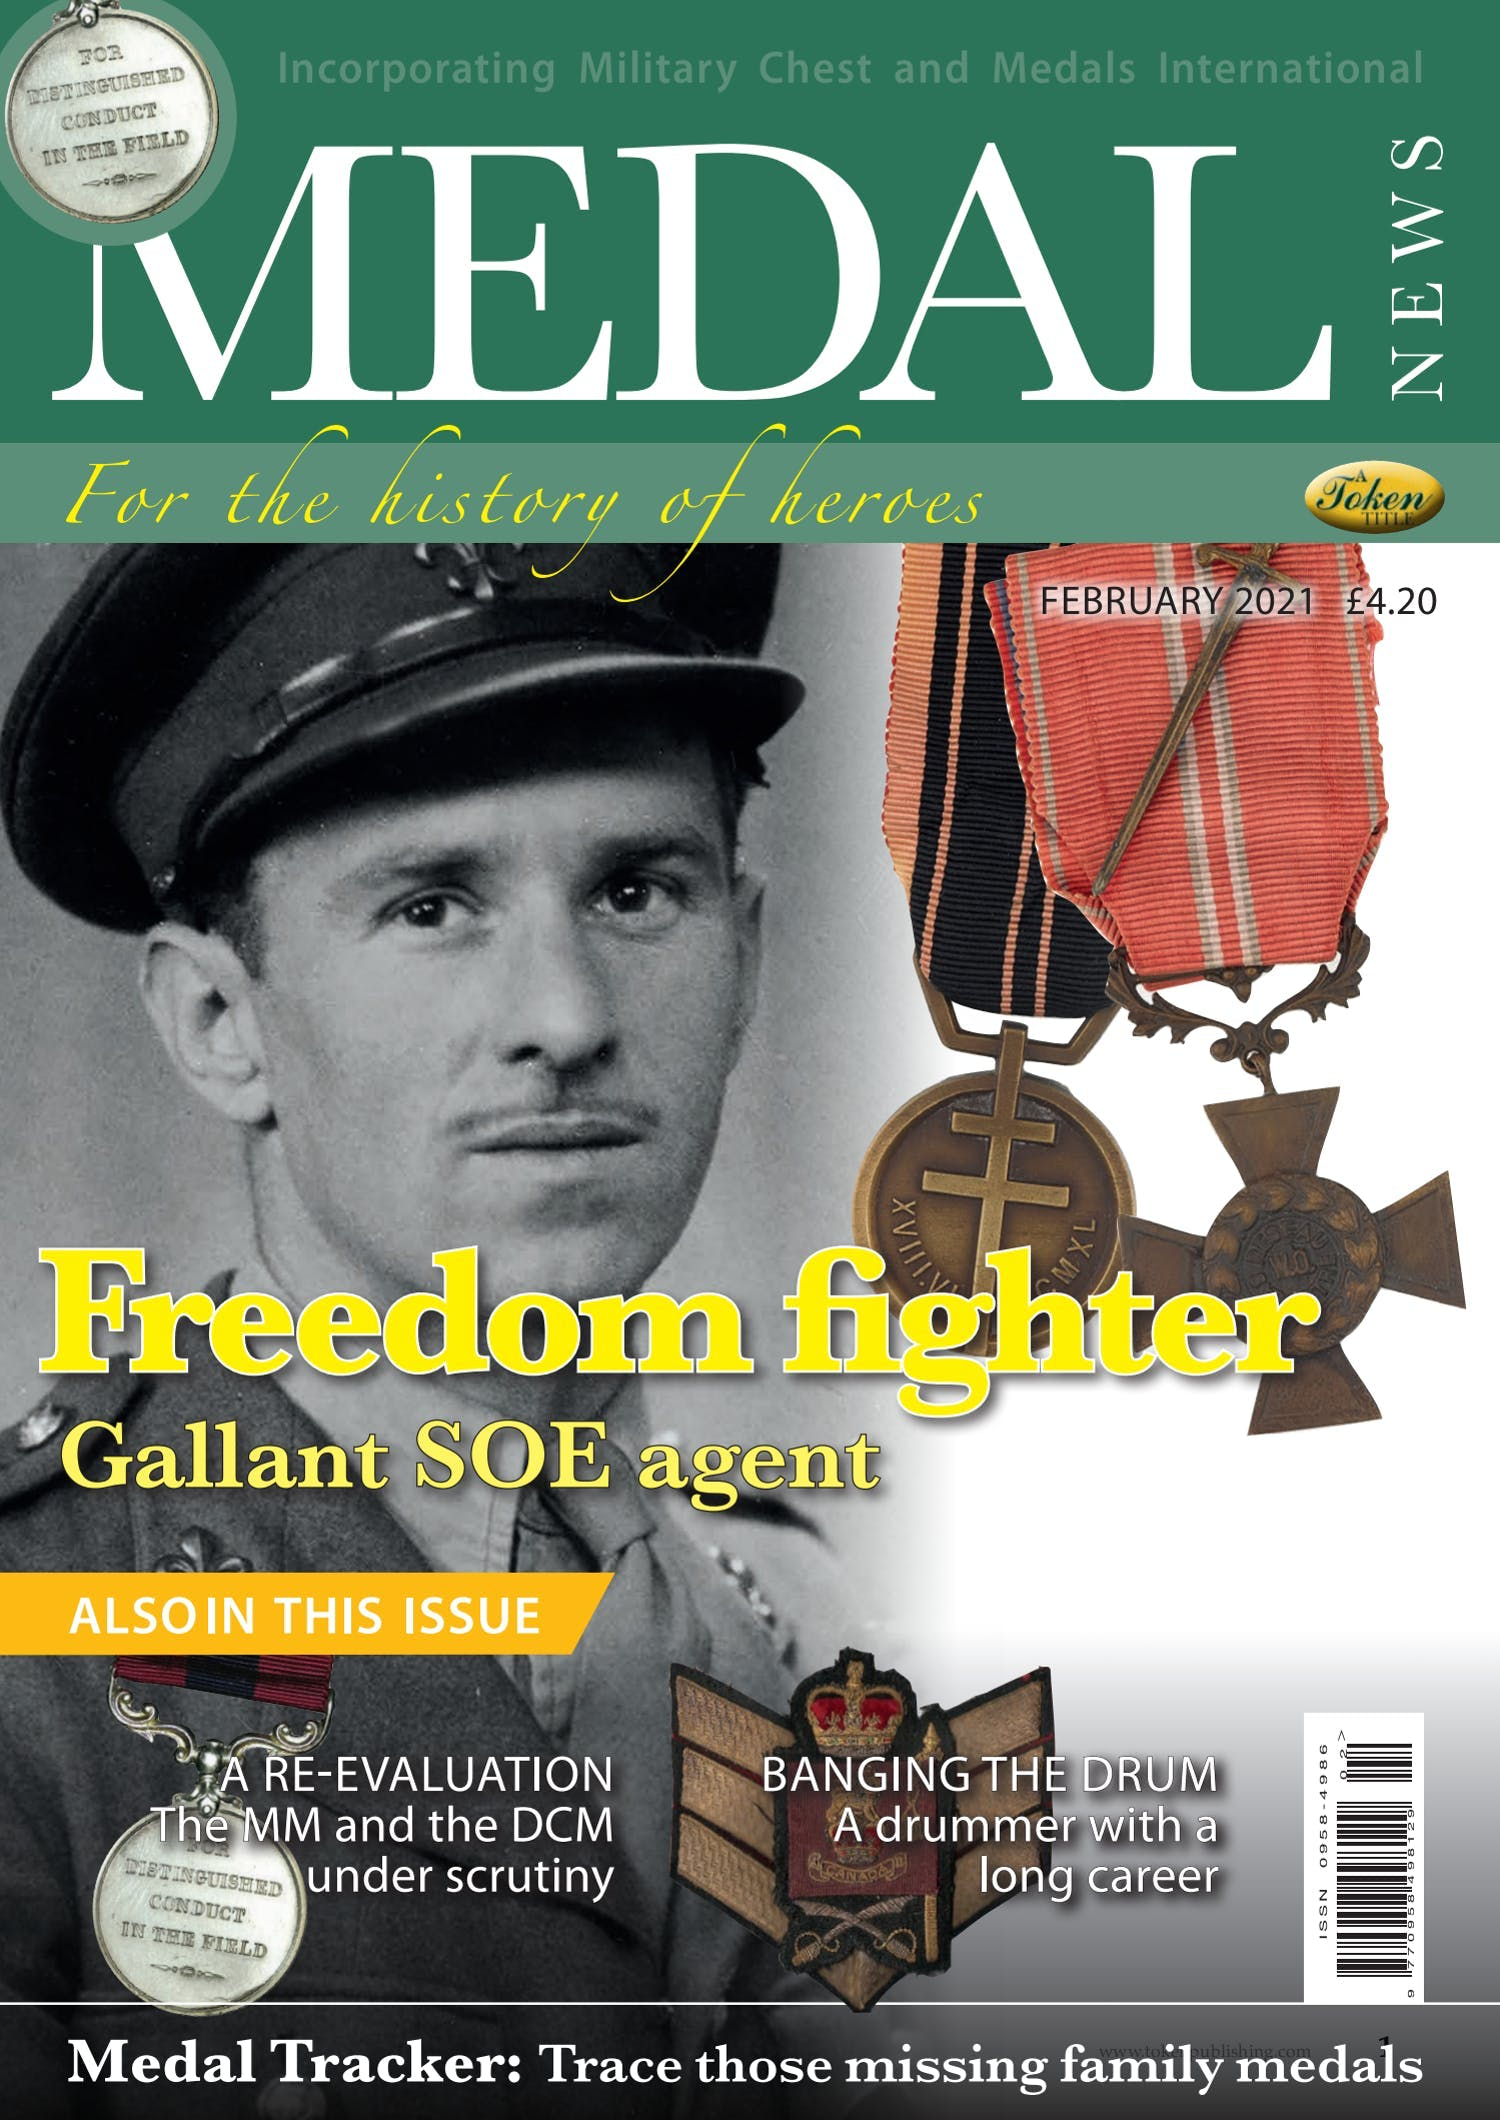 Front cover of 'Freedom fighter', Medal News February 2021, Volume 59, Number 2 by Token Publishing